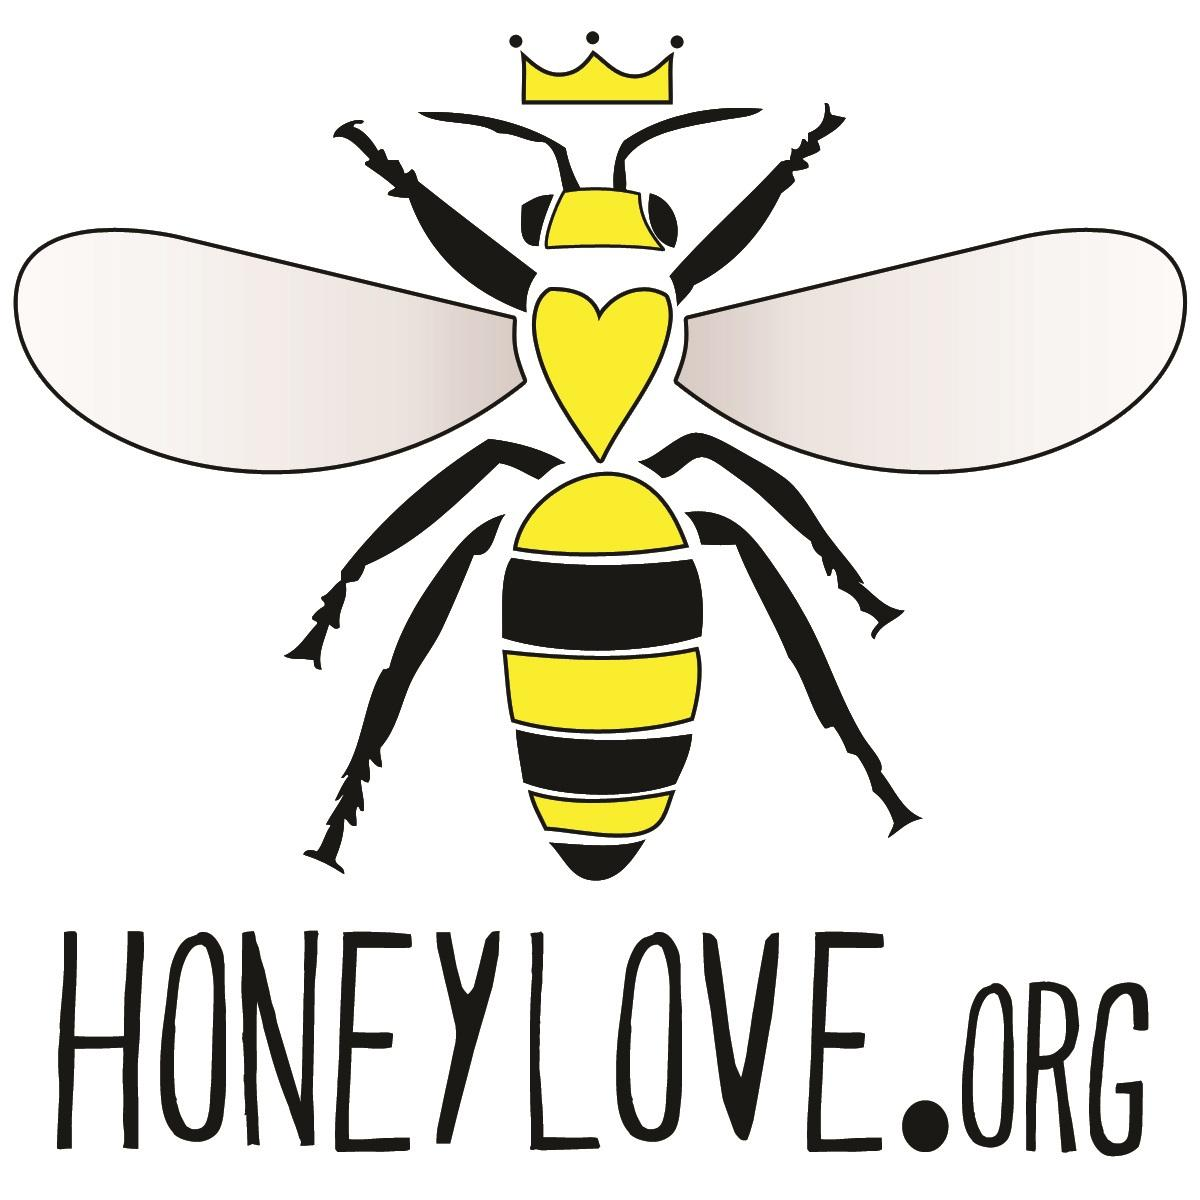 HoneyLove logo